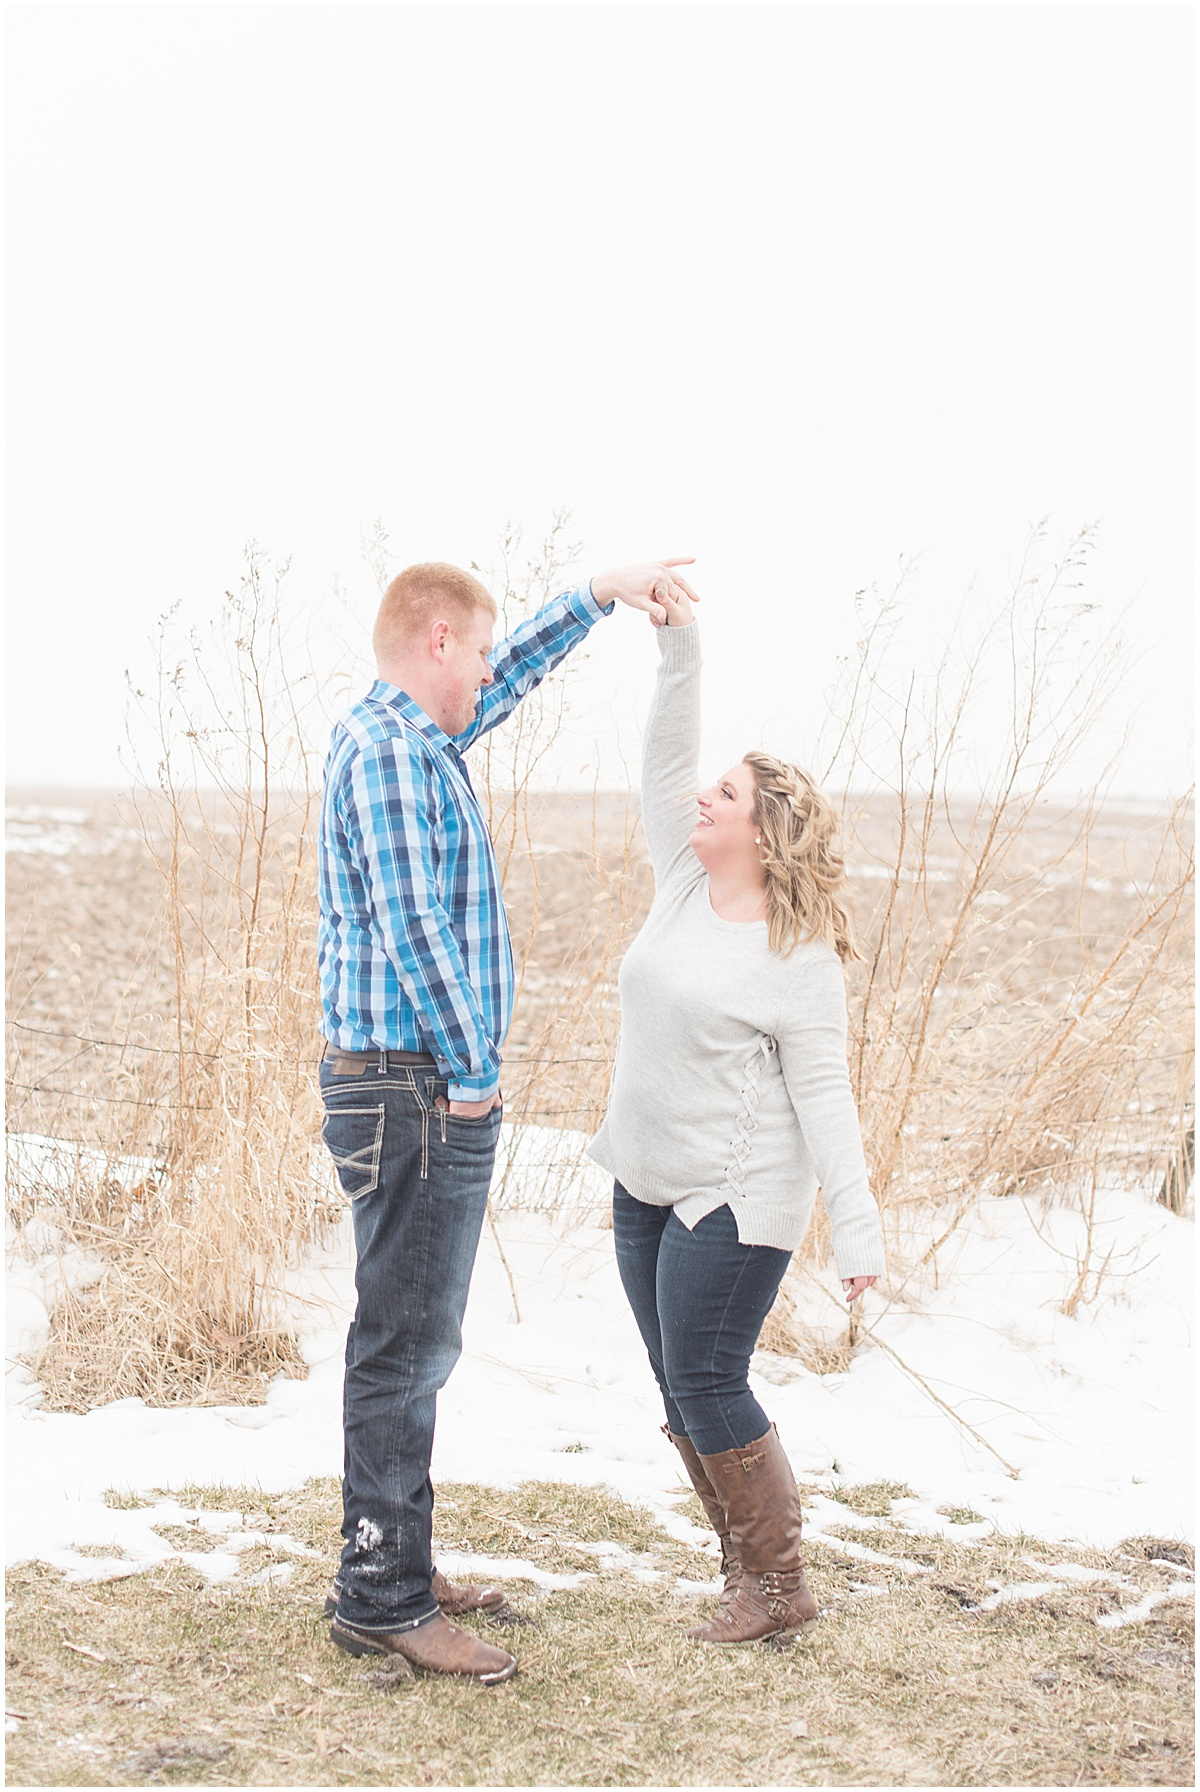 Ryan & Katie - Country Engagement Photos in Otterbein Indiana10.jpg